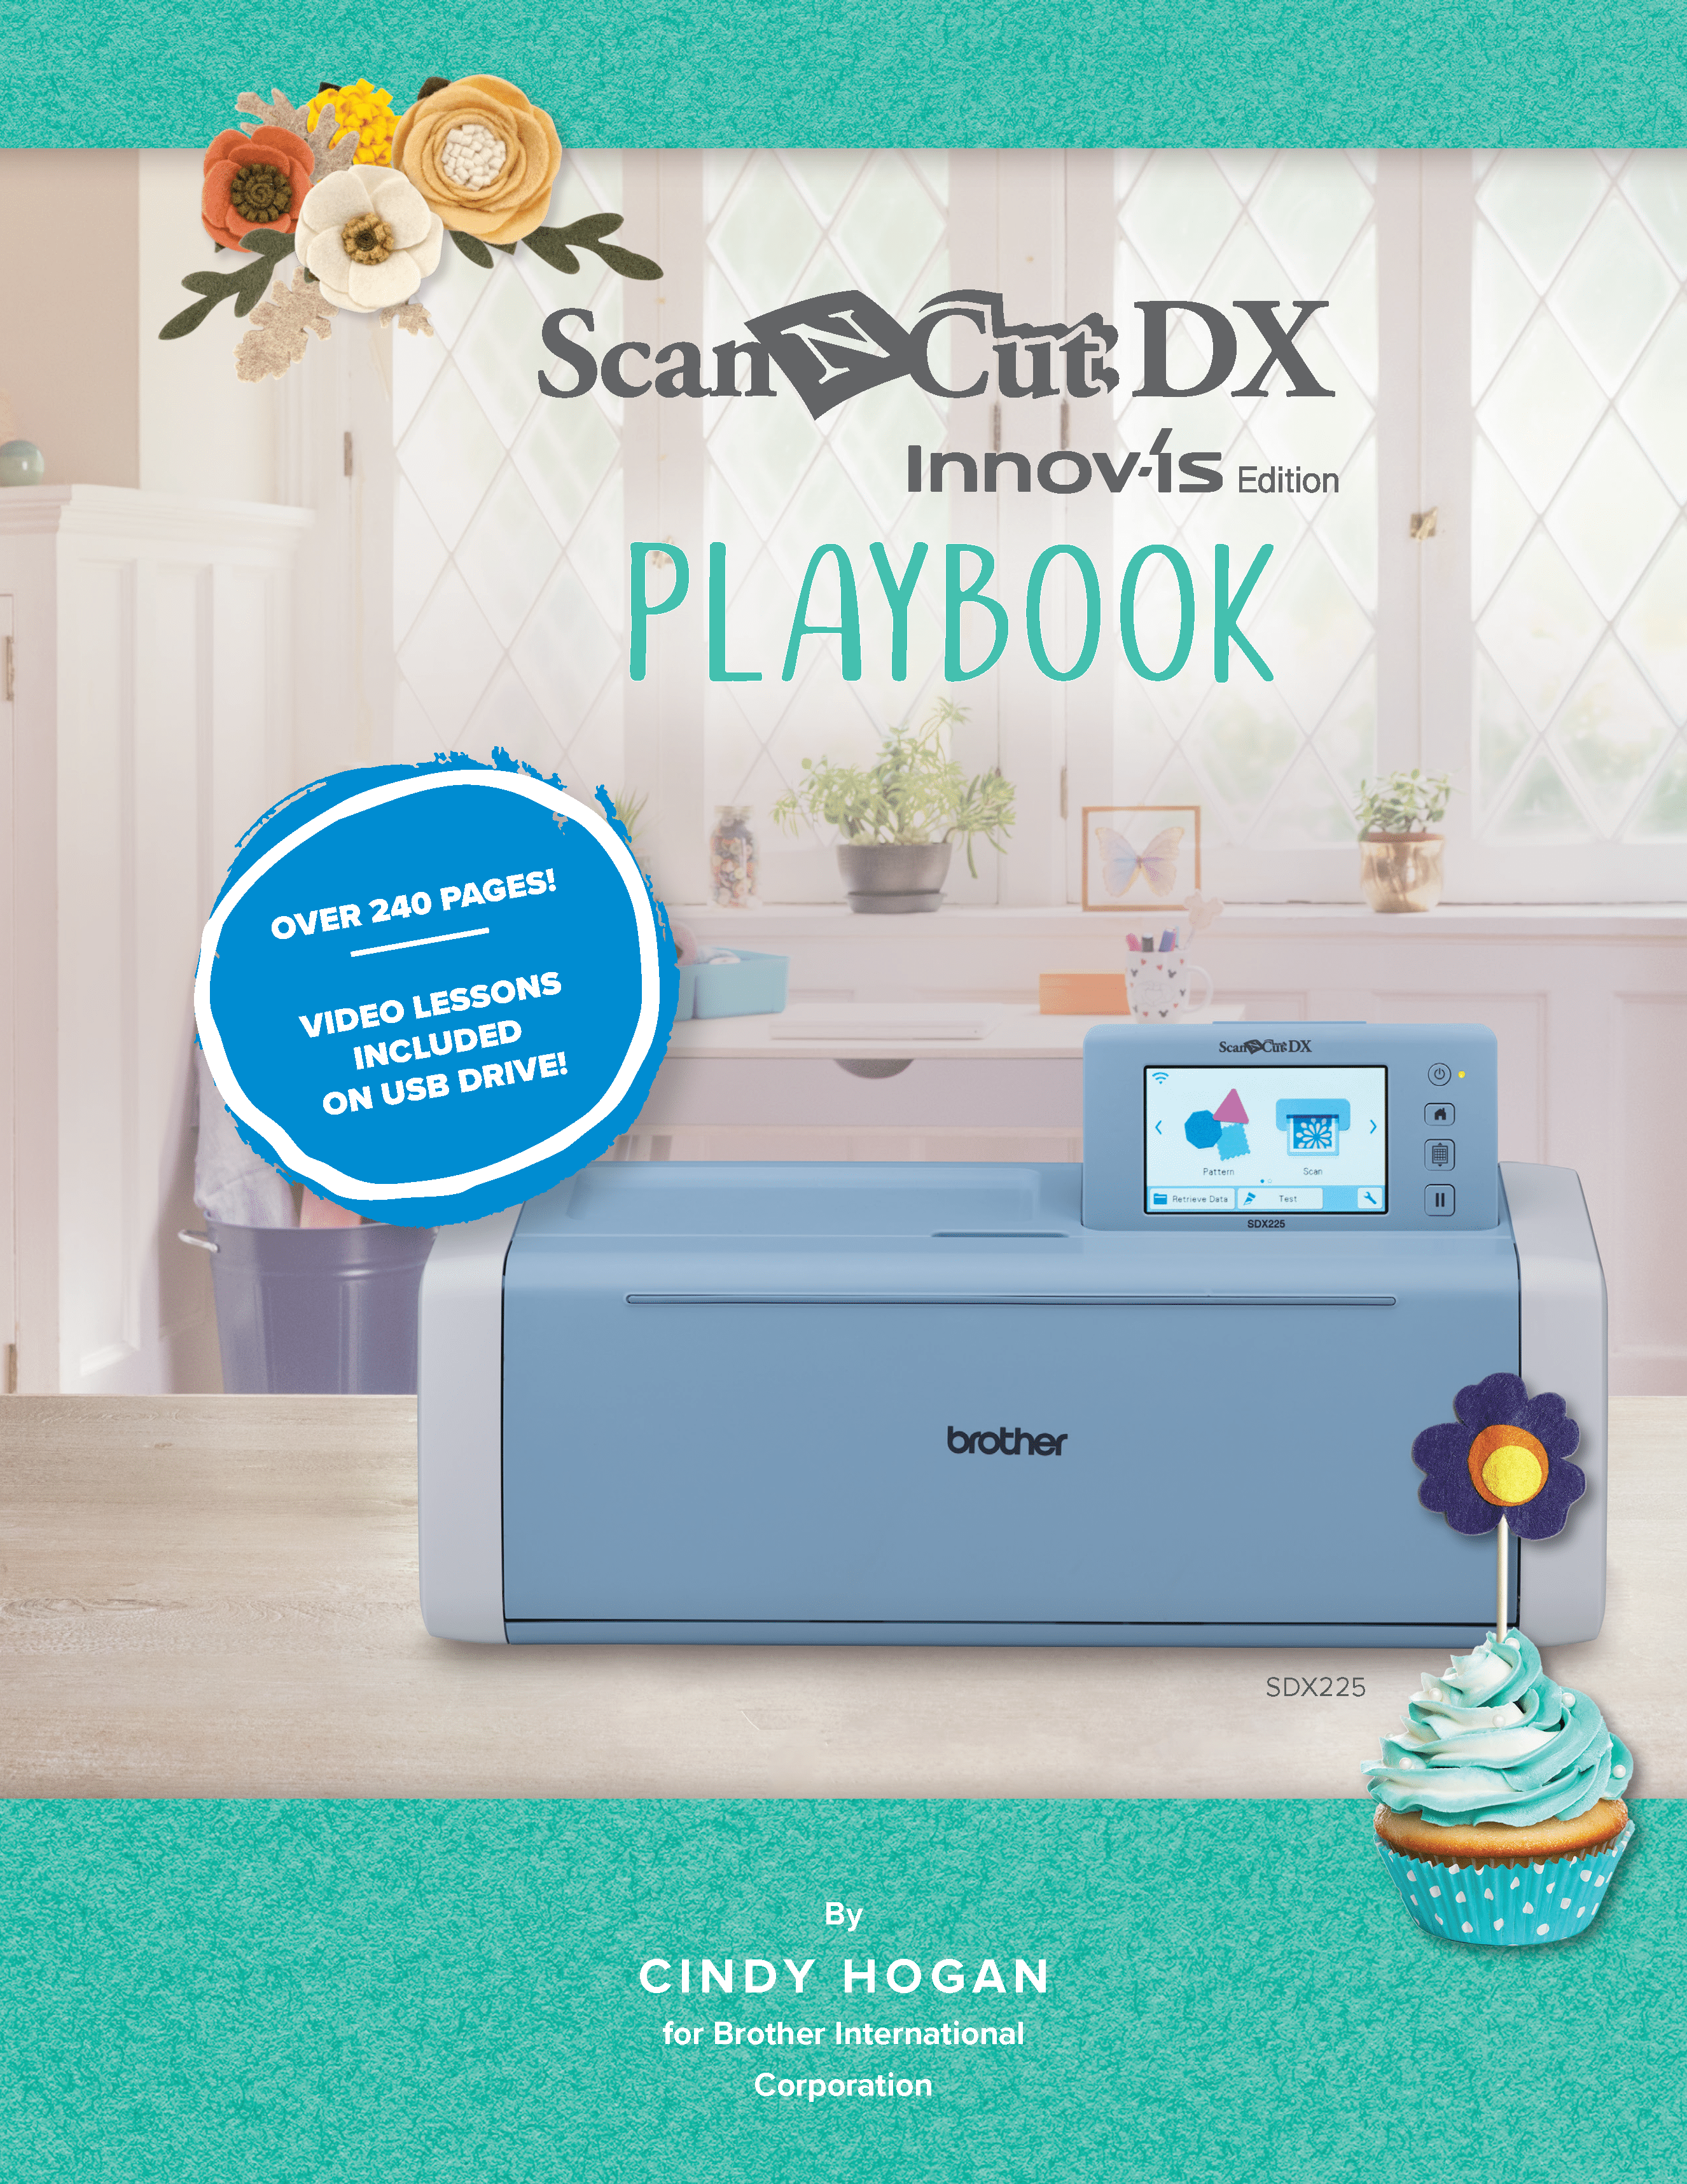 BRTHR-29983_SNCDX_Playbook_PNG_Page_01